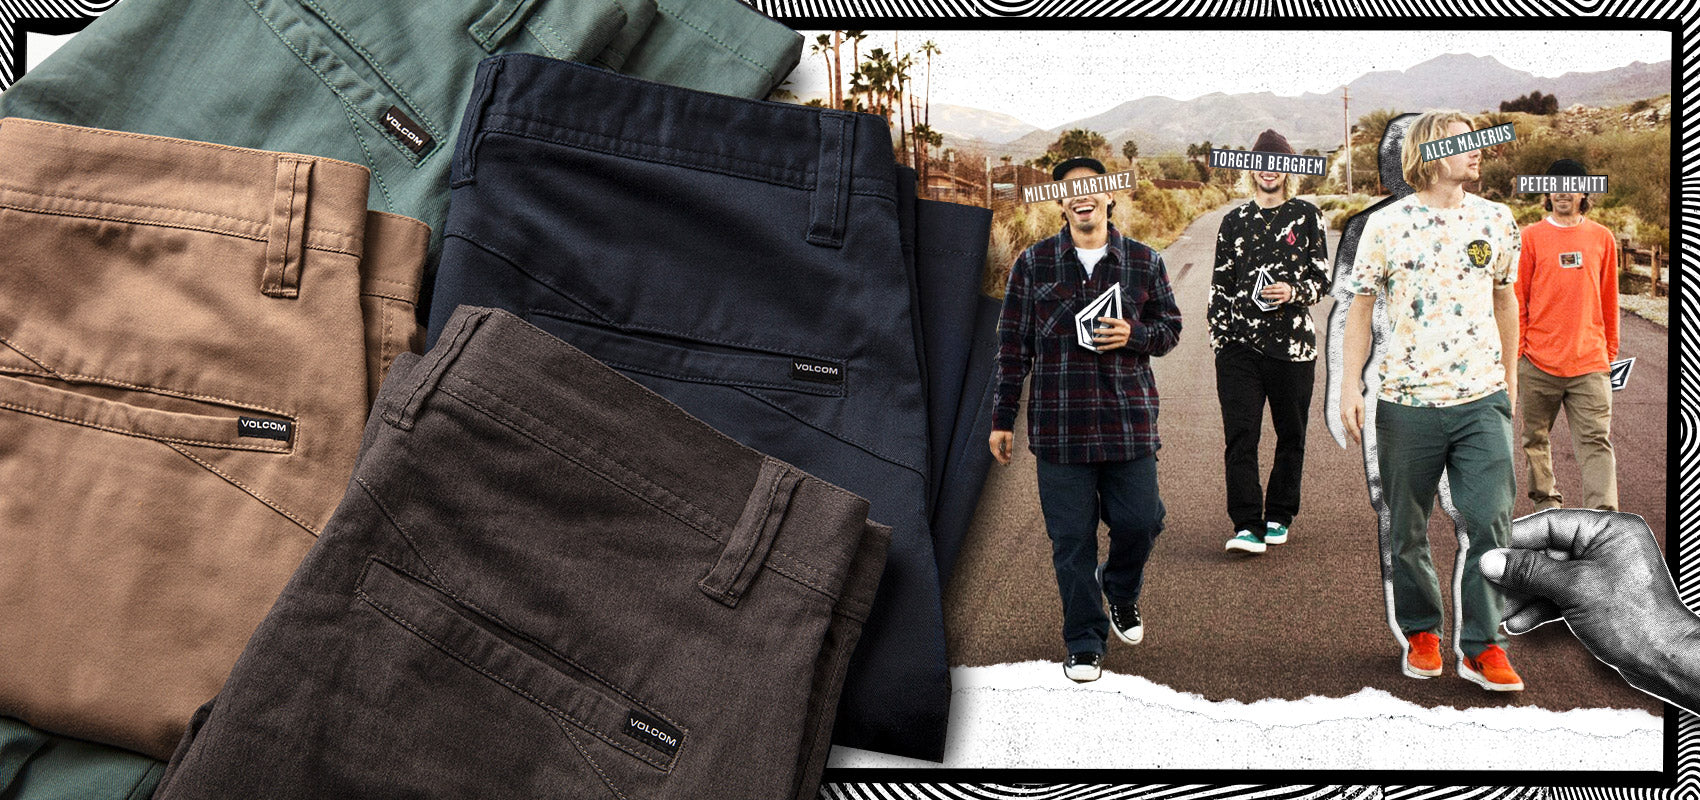 4 different color Frickin Chinos in different colors with an image of 4 Volcom team riders wearing Volcom apparel.